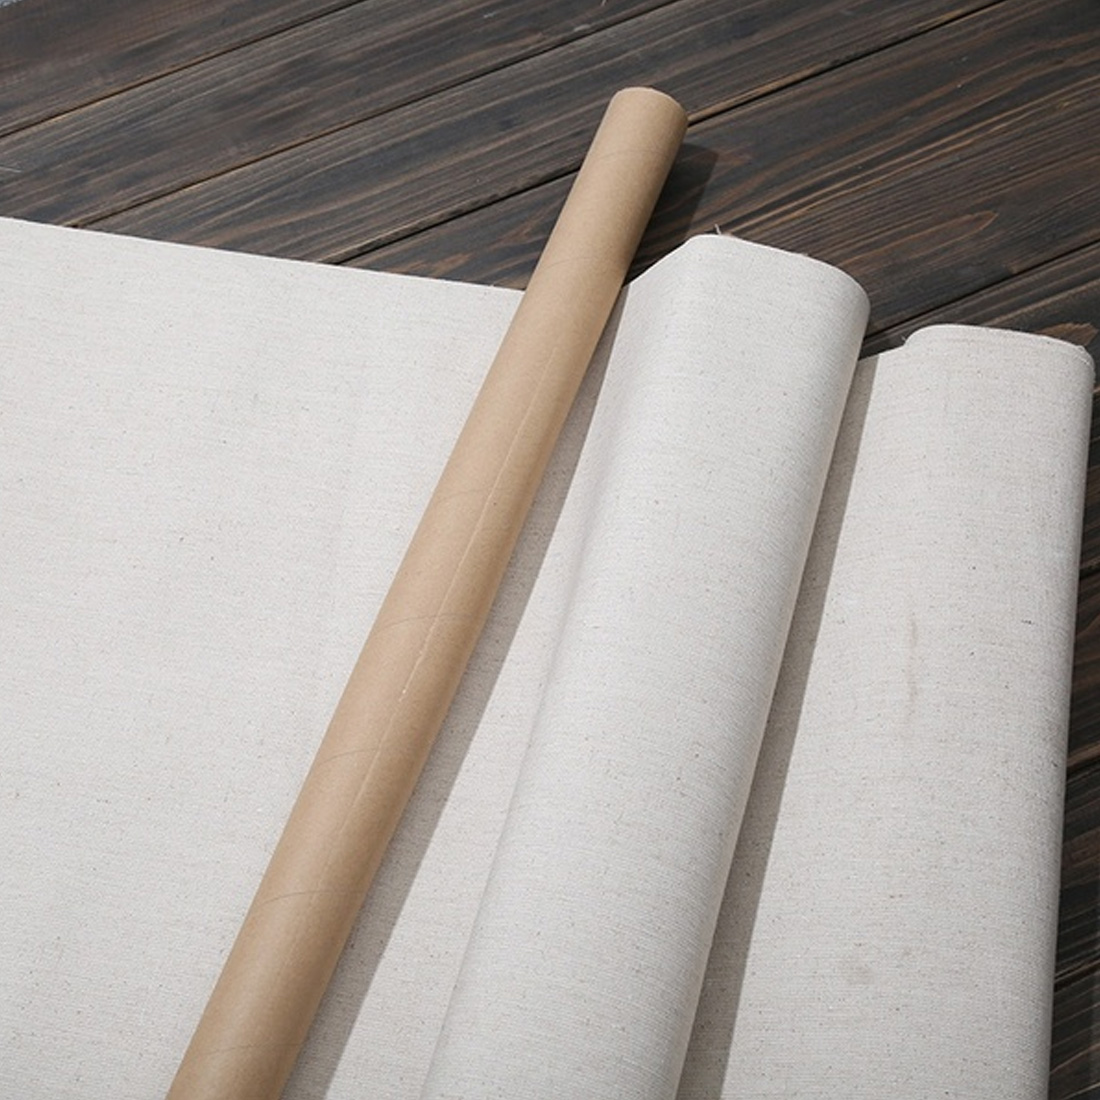 1M Linen Blend Primed Blank Canvas Layer Oil Painting Canvas Acrylic Painting 1m One Roll ,28/38/48/58 Width